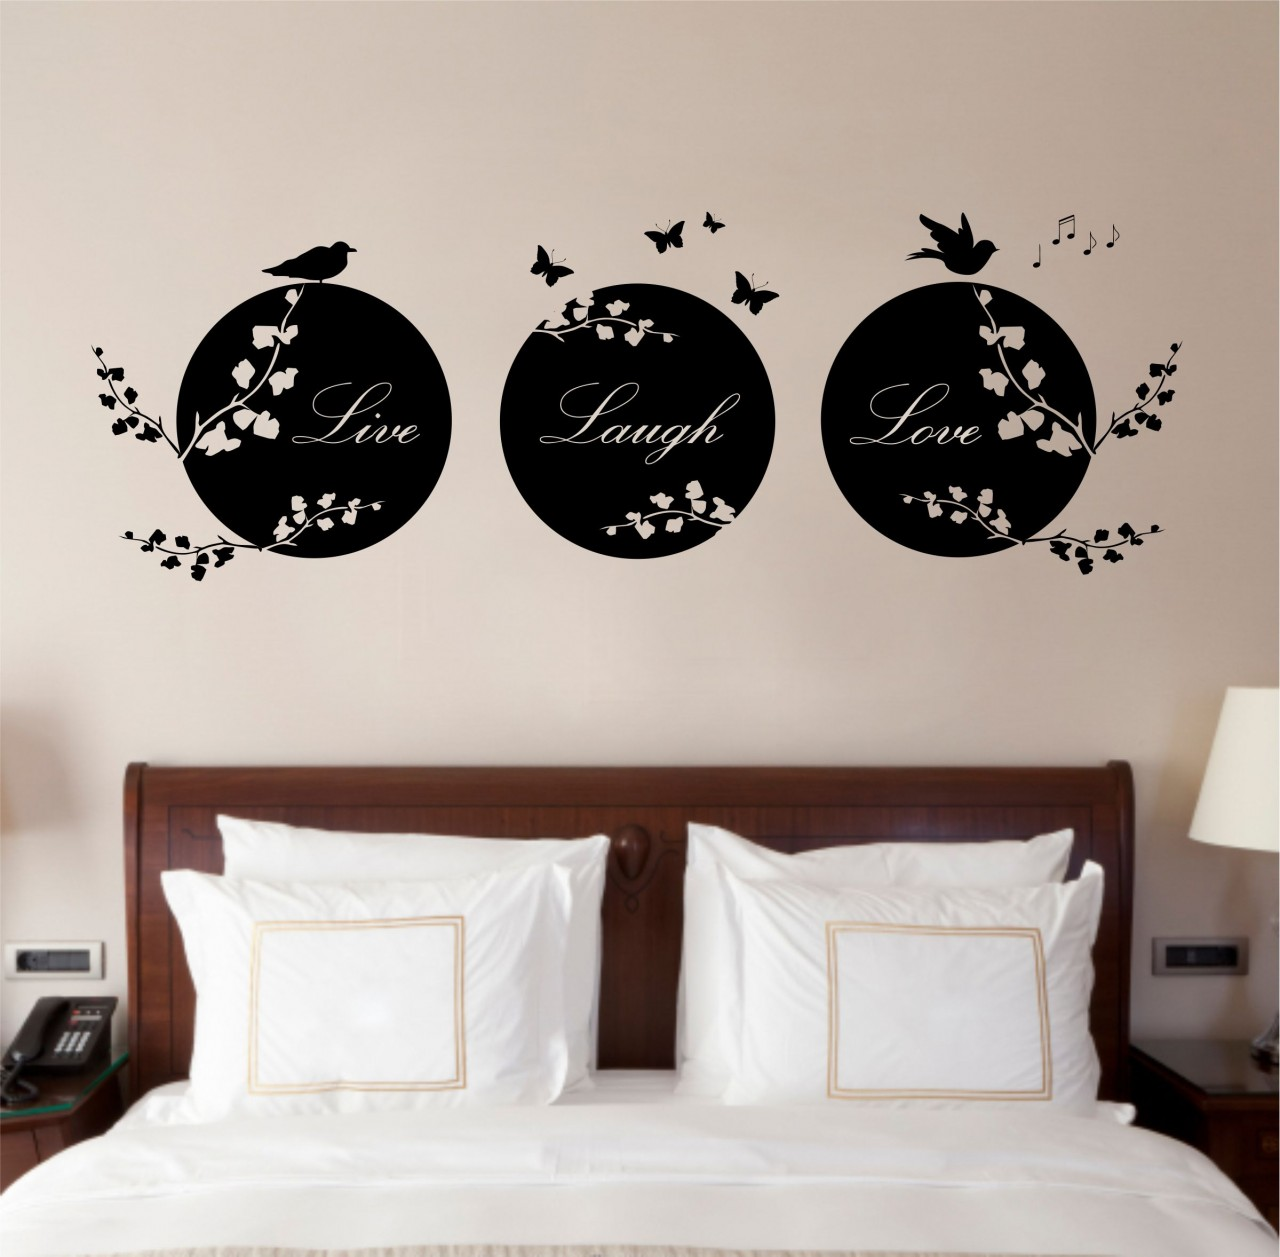 Vinyl wall art: makeover for your homes